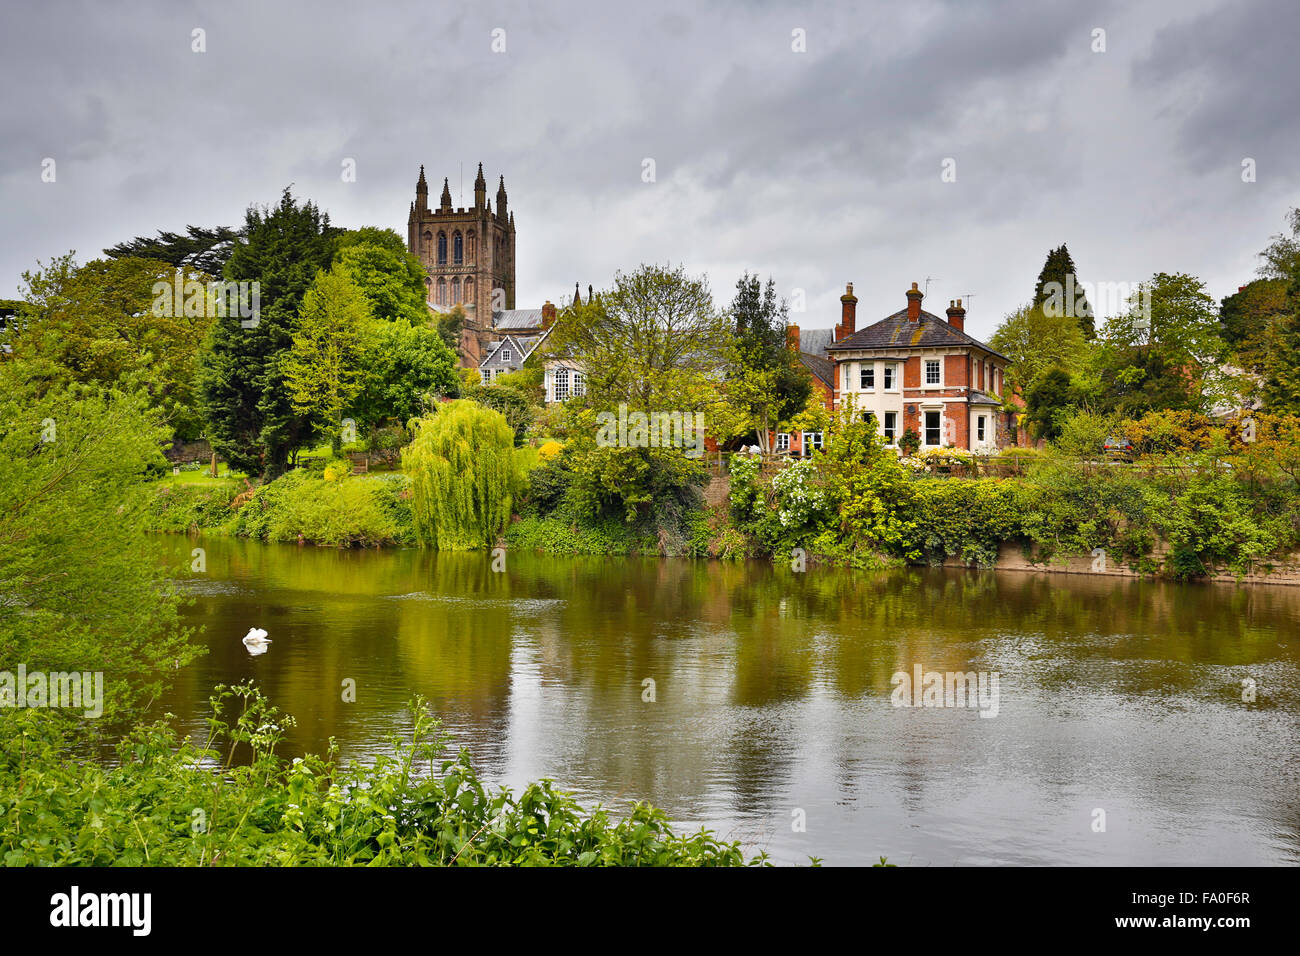 Hereford; River Wye and Cathedral; UK - Stock Image